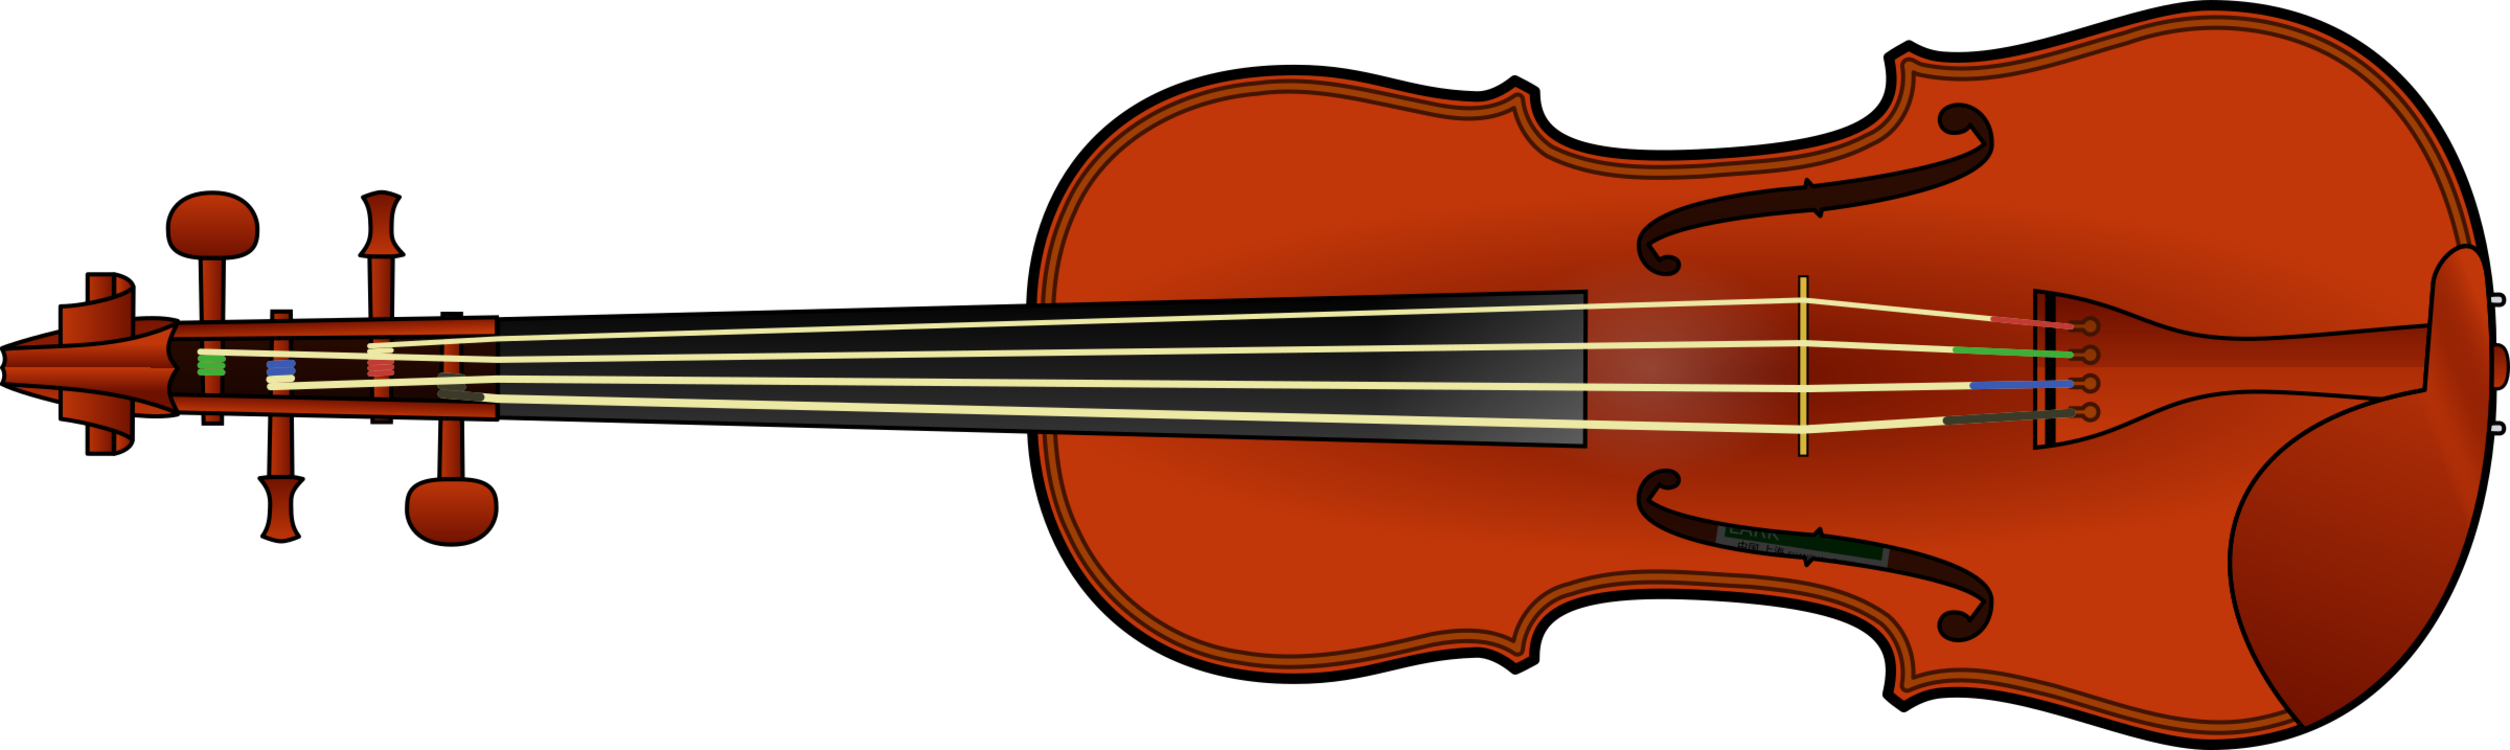 Musical instruments fiddle string. Guitar clipart violin clip art free stock